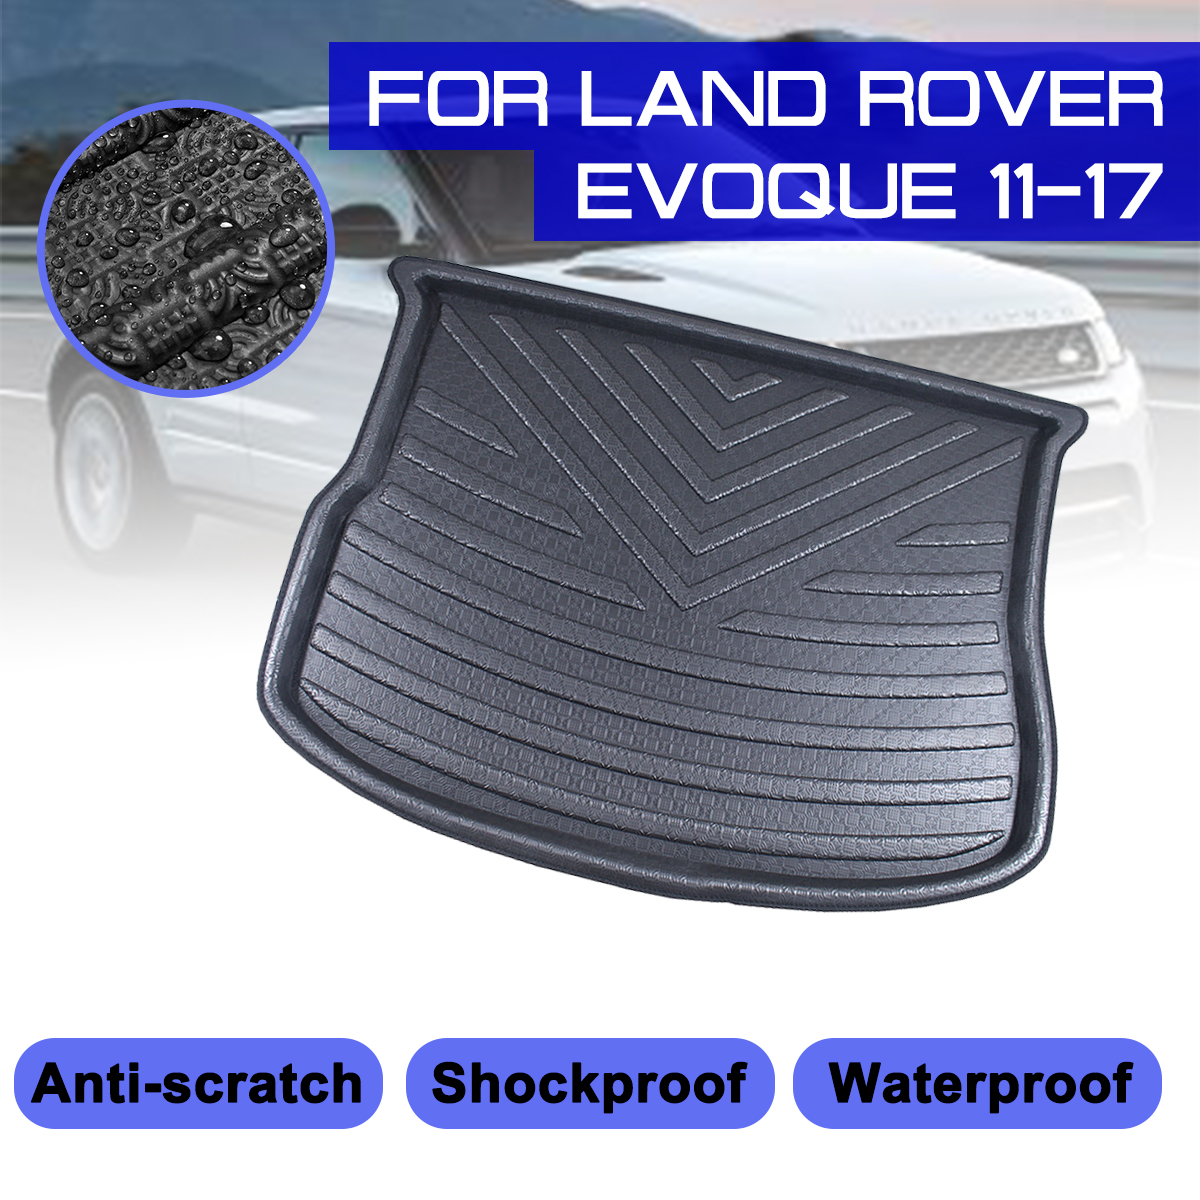 For Land Rover Evoque 2011 2012 2013 2017 Car Rear Trunk Boot Mat Waterproof Floor Mats Carpet Anti Mud Tray Cargo Liner|  - title=